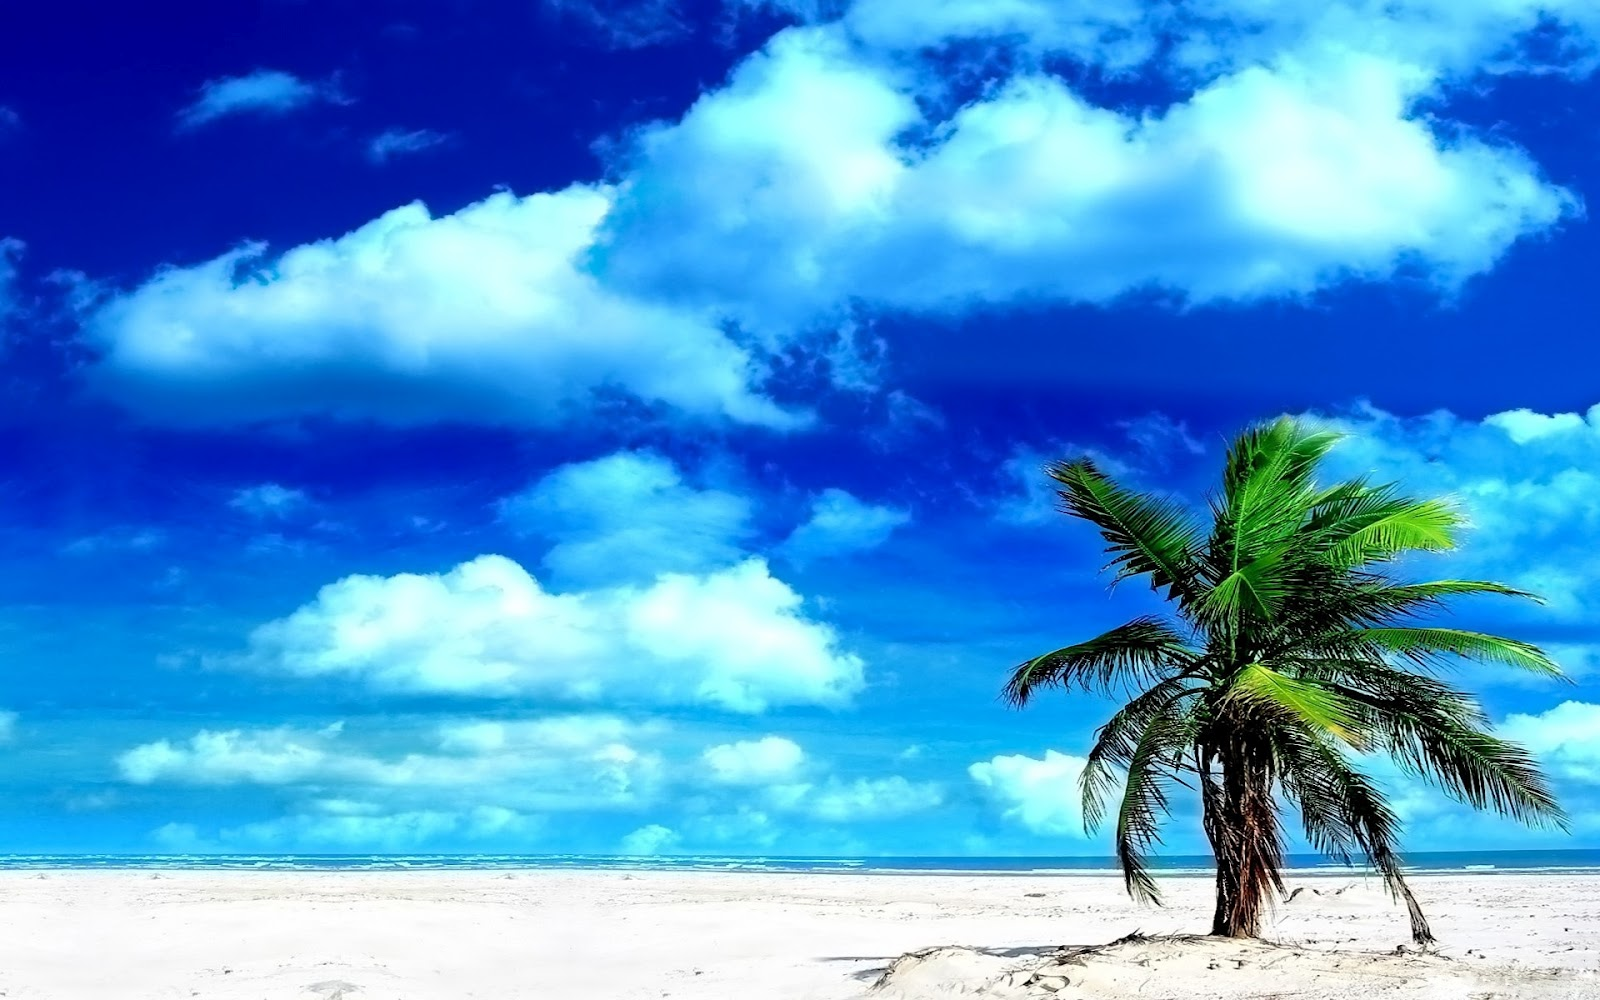 Hd Tropical Island Beach Paradise Wallpapers And Backgrounds: Tourism: Paradise Island